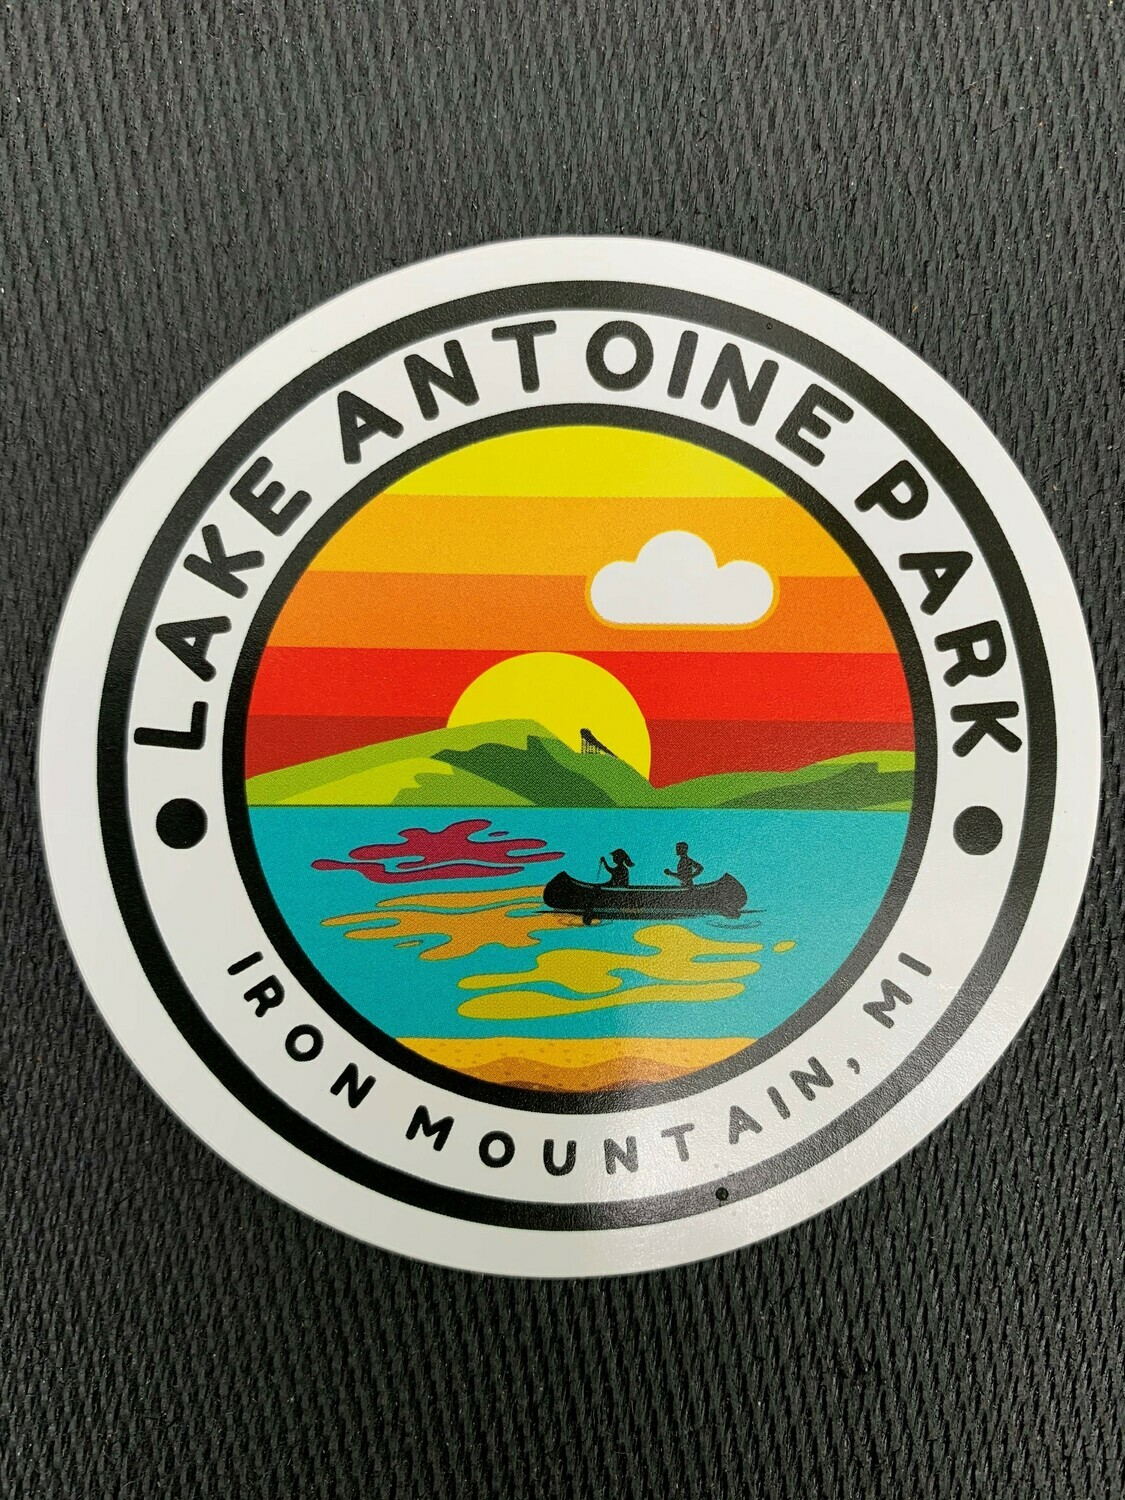 Lake Antoine Park Sticker- 2020